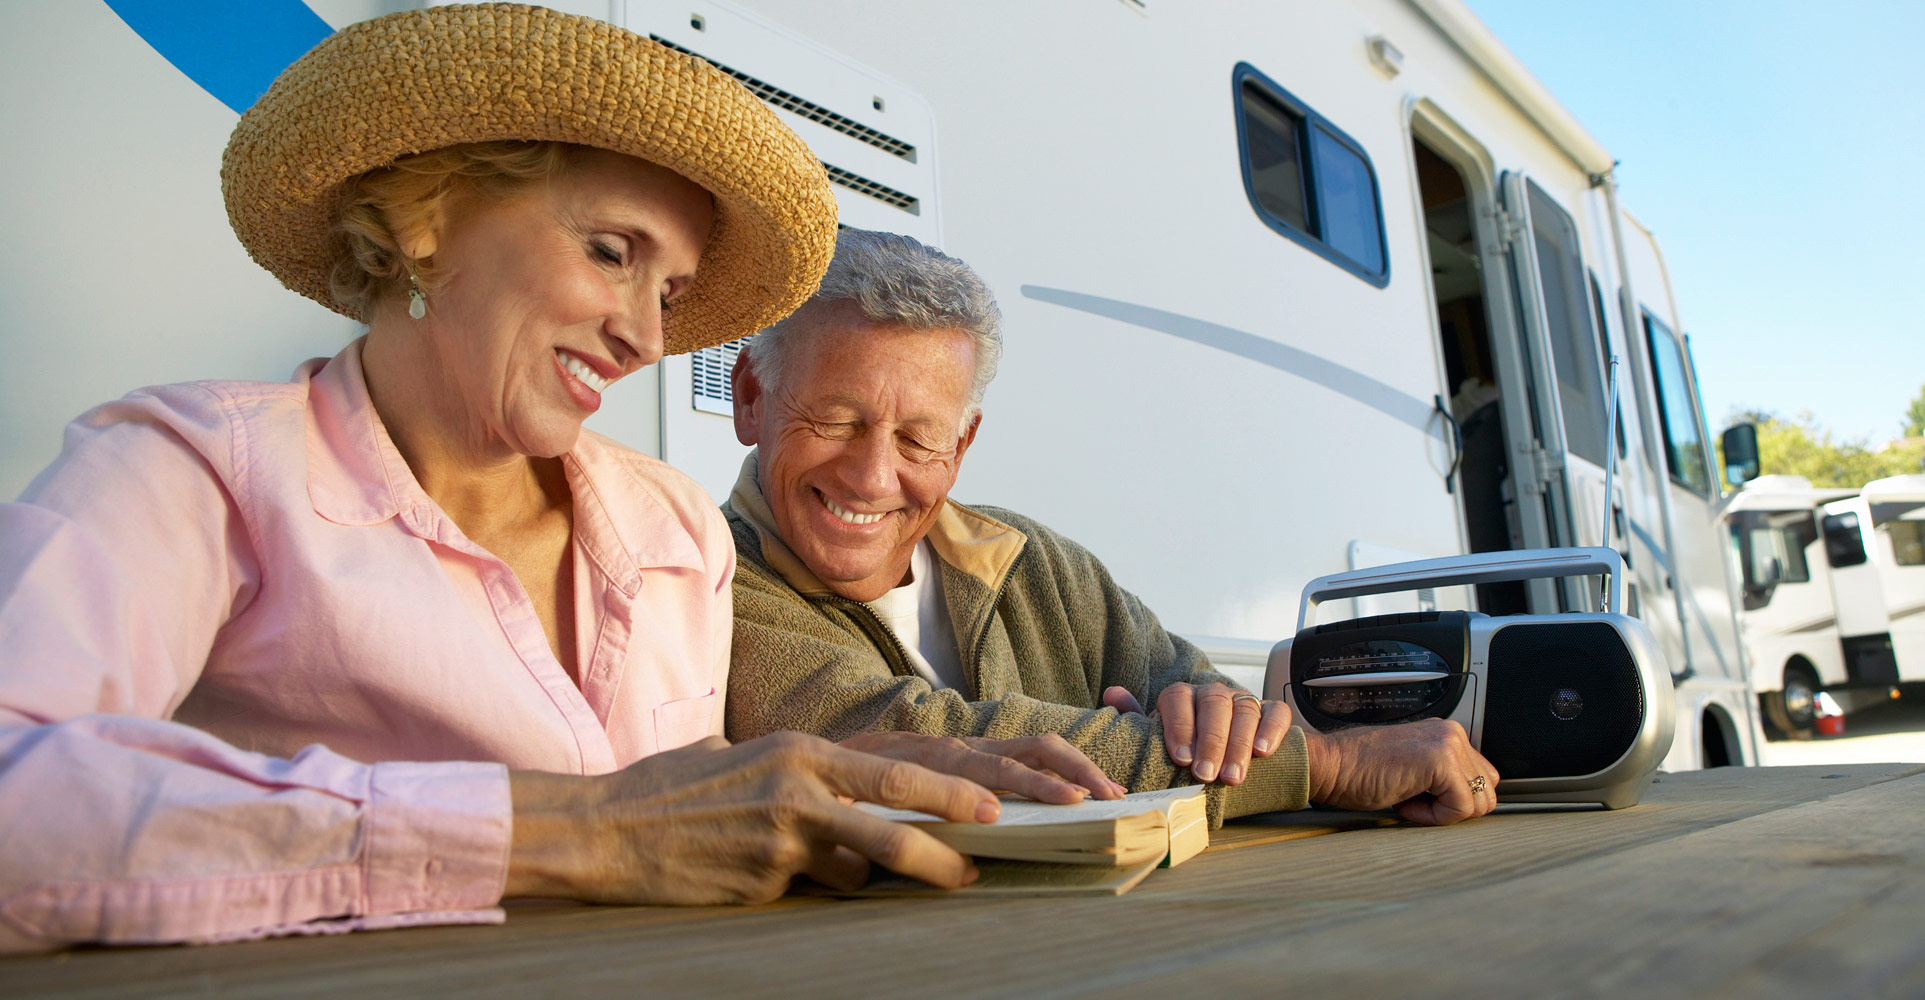 Seniors enjoy this local RV resort